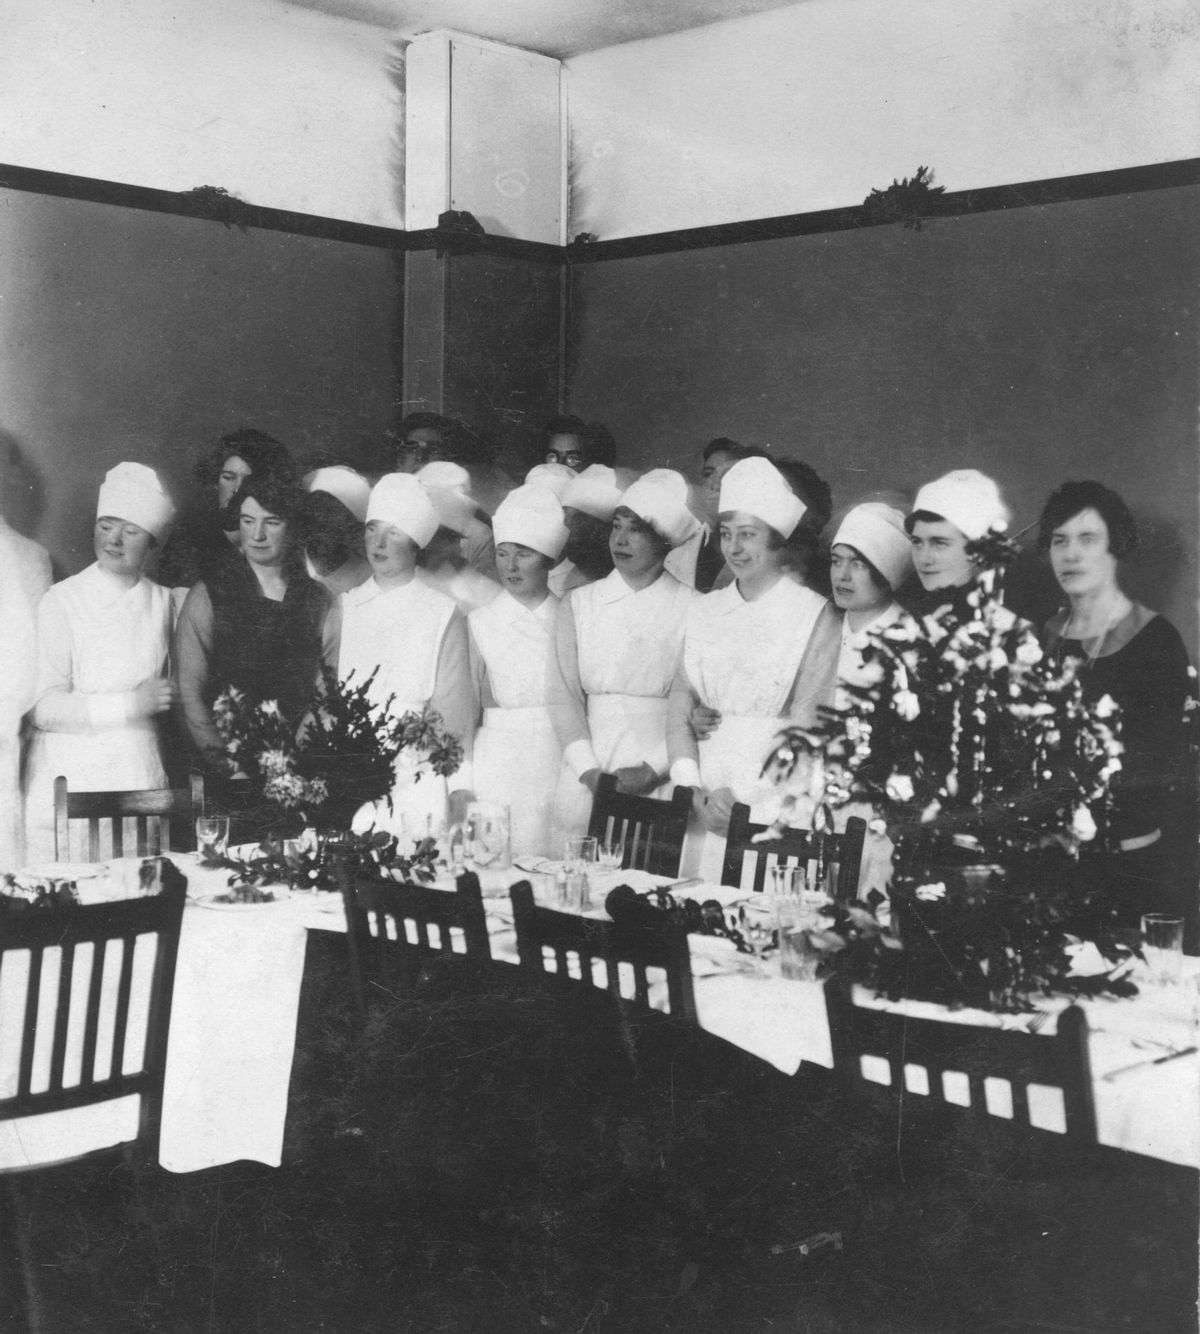 """These are nurses at a hospital in Shropshire in the 1920s, although we're not sure where exactly. Fourth from right is Miss Gladys Deacy, whose niece Della Bailey originally loaned this picture. Nurse Deacy lived at various times at Kemberton and the Catholic House in Madeley.The back of the picture says it is at """"Wantage House."""" Could that perhaps have been part of a hospital at Shifnal, Bridgnorth, or Shrewsbury?"""